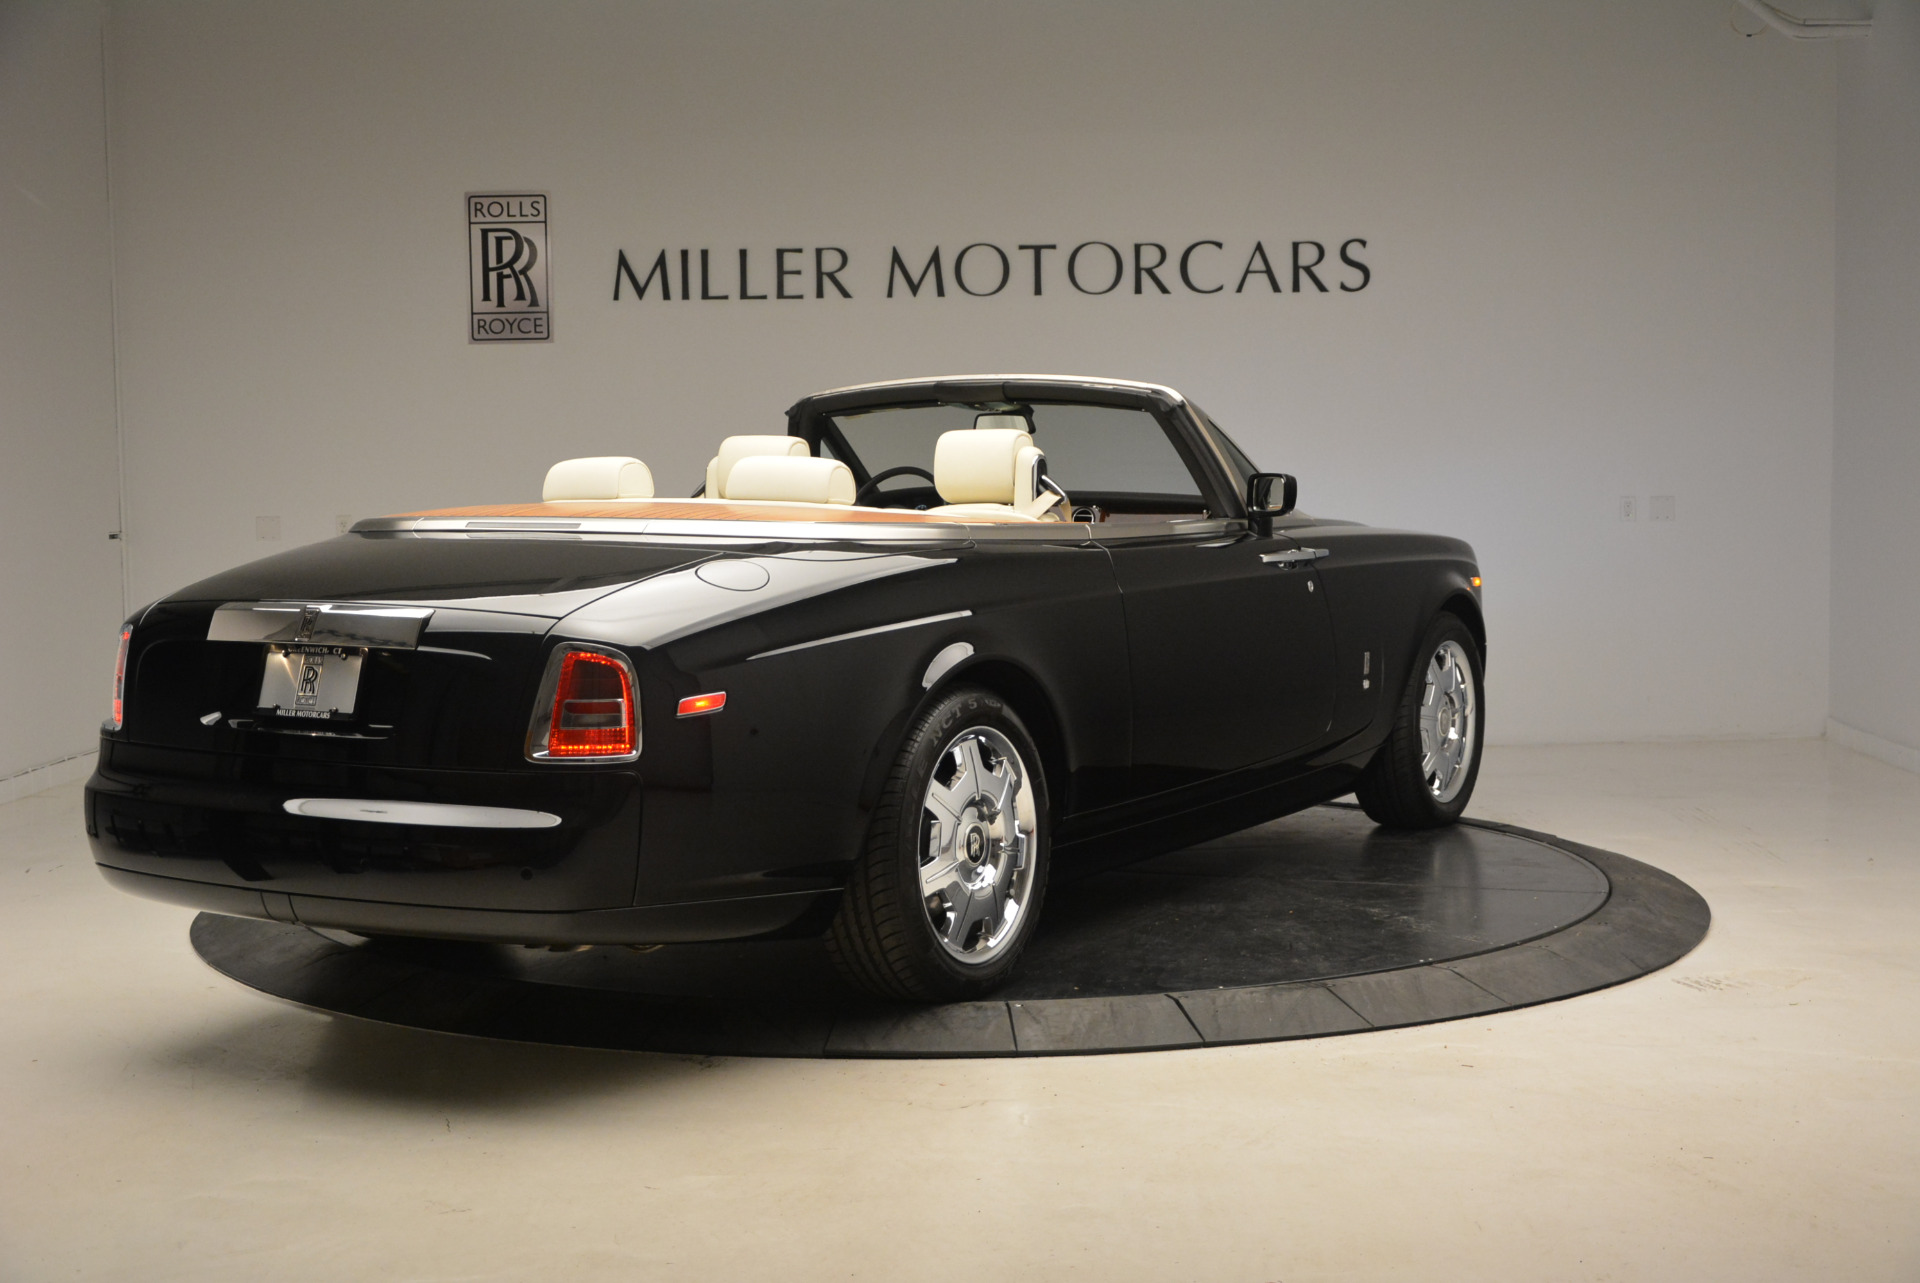 Used 2009 Rolls-Royce Phantom Drophead Coupe  For Sale In Westport, CT 1792_p8